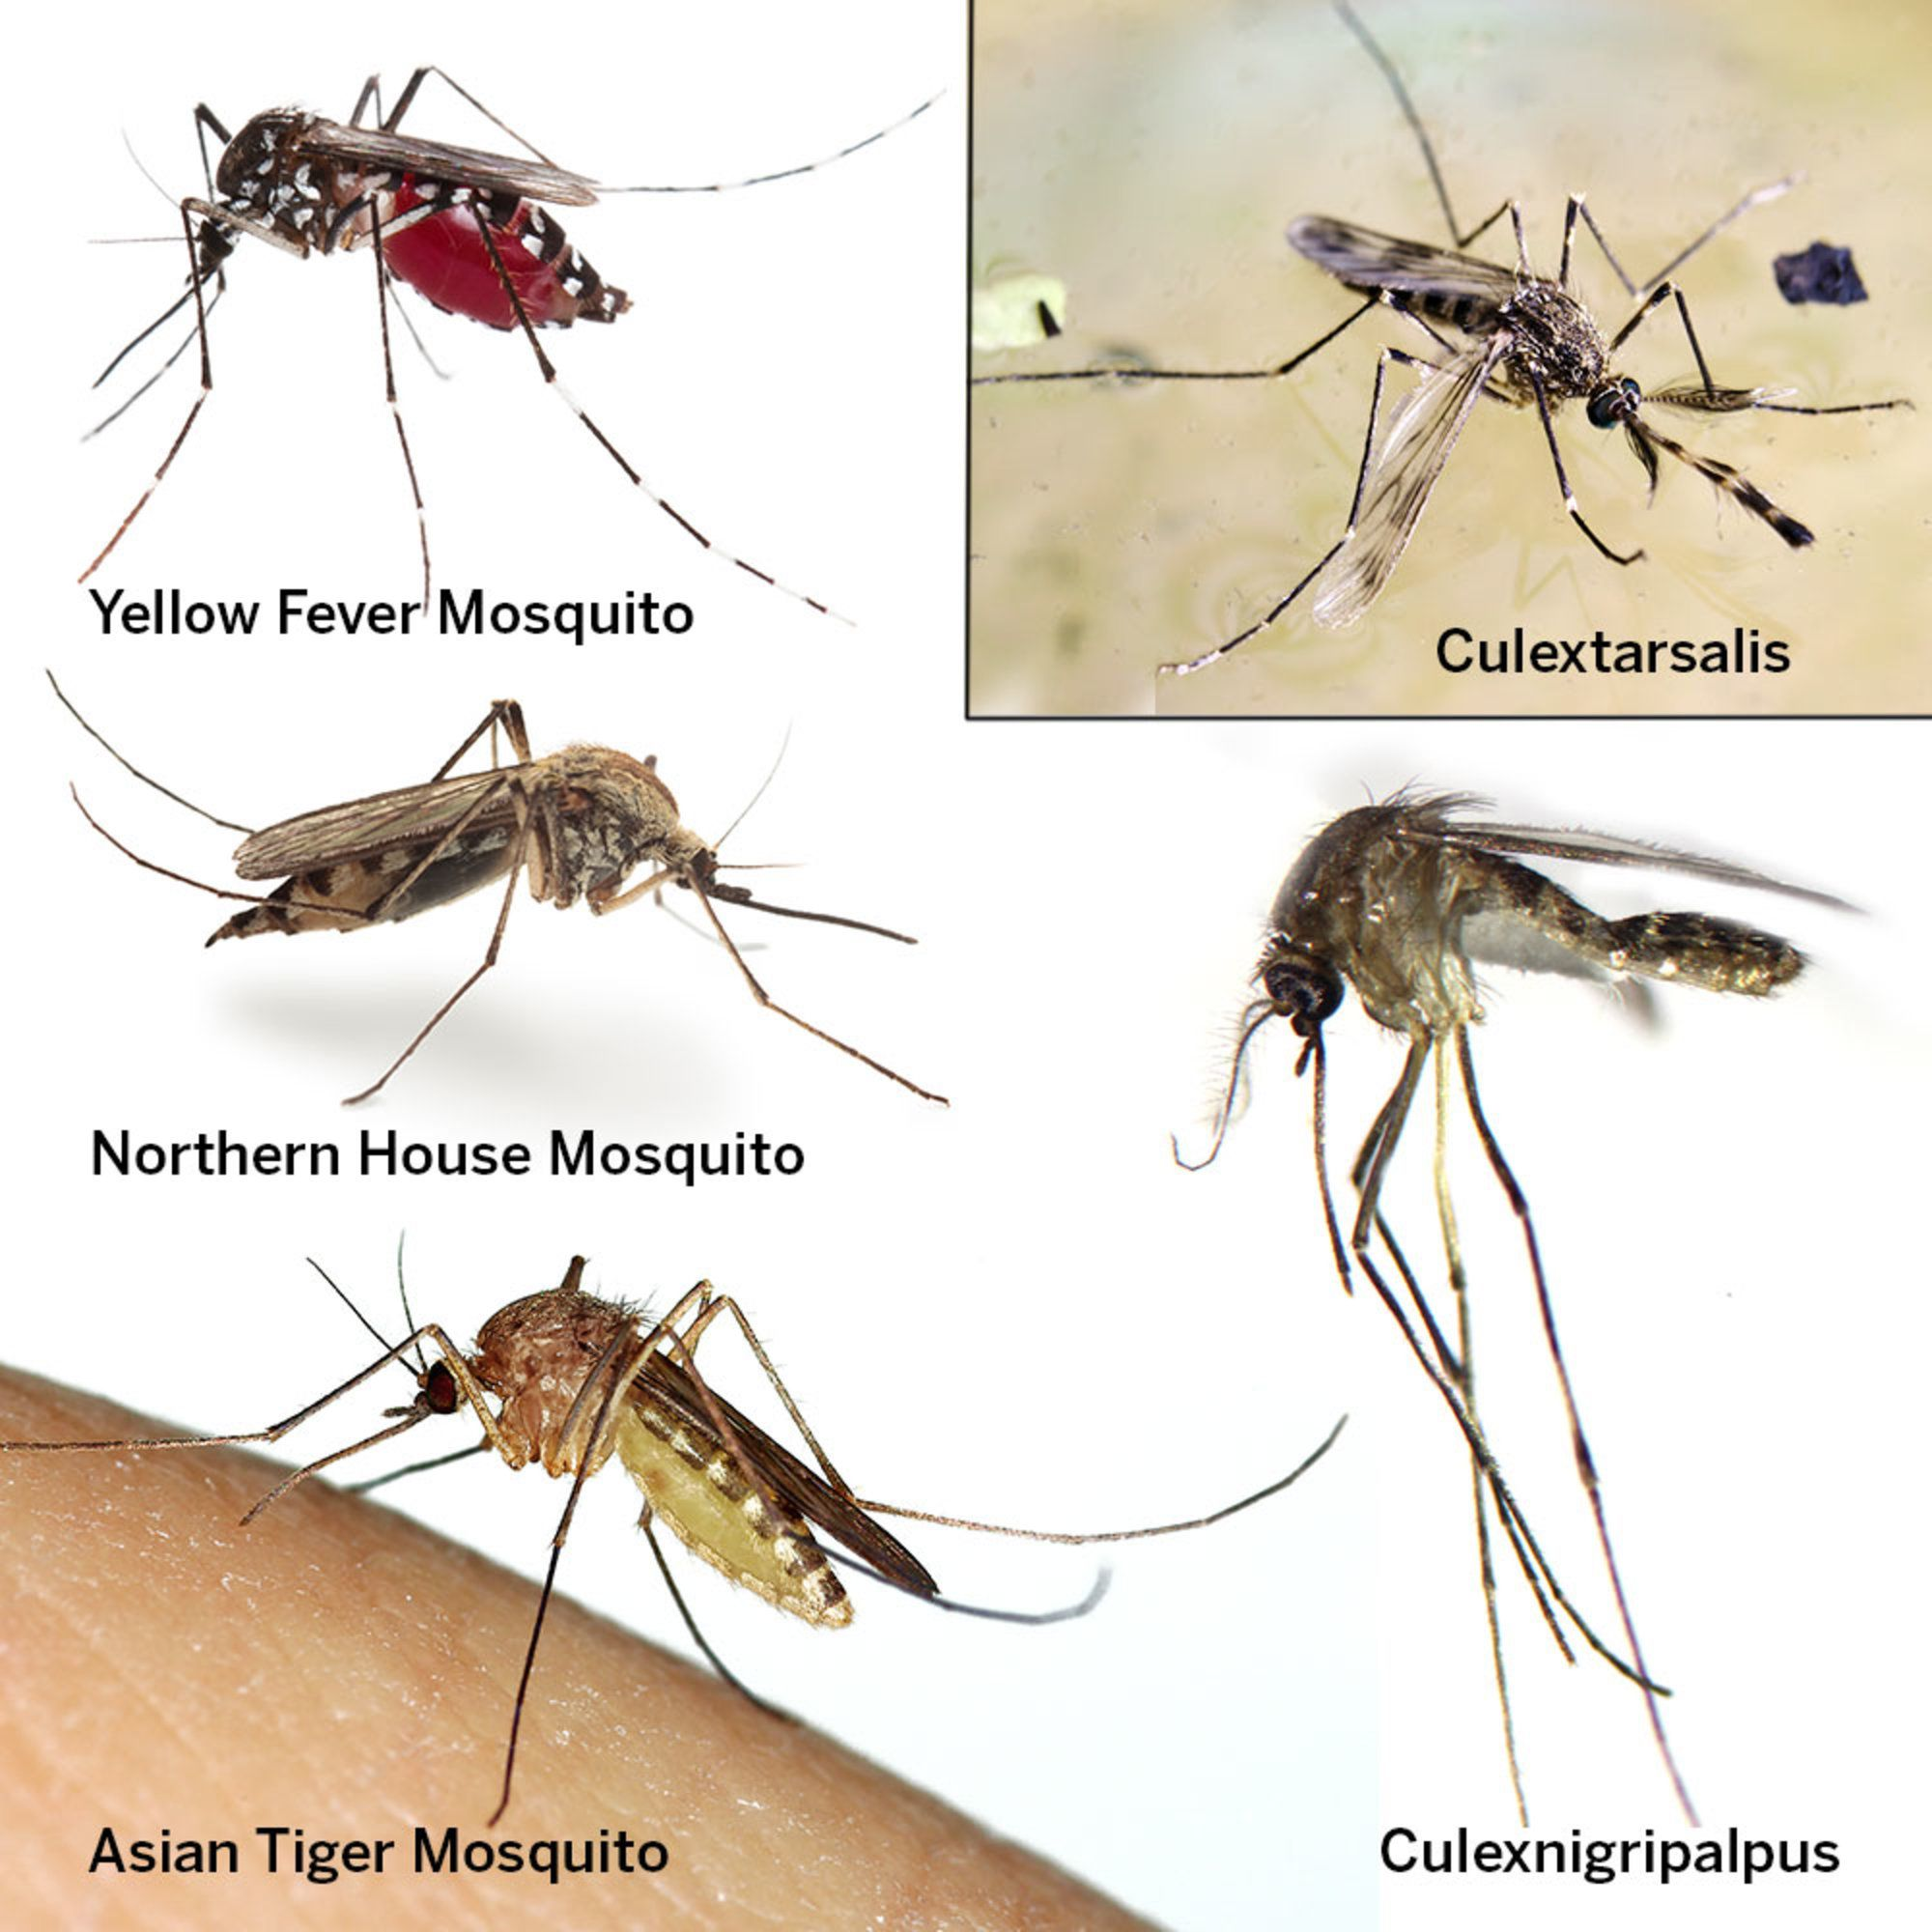 Such different types of mosquitoes